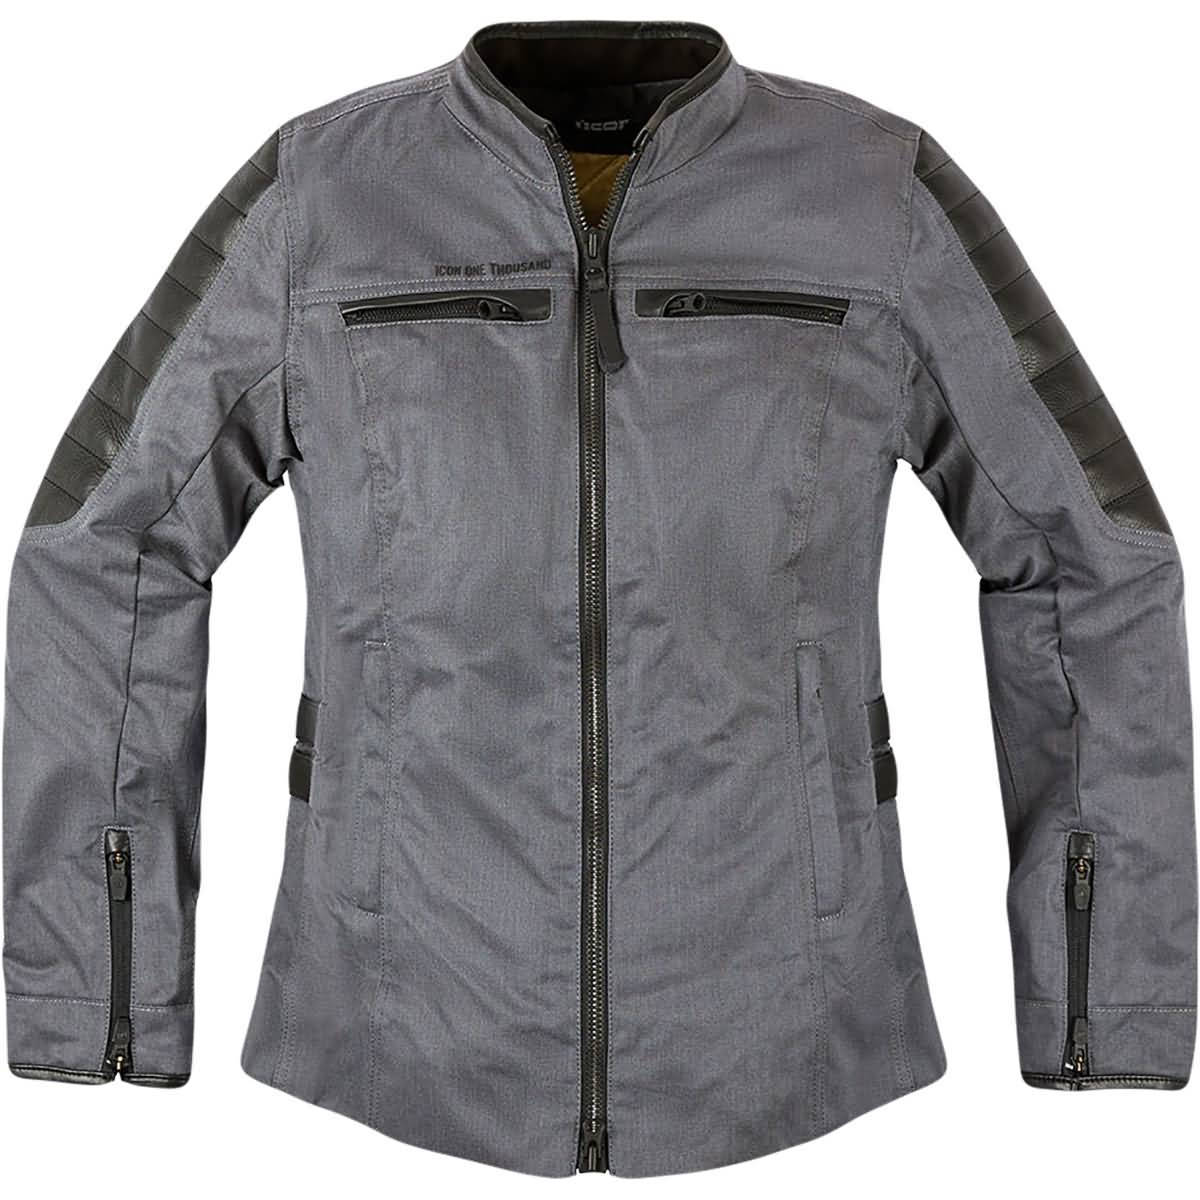 Icon 1000 MH1000 Women's Street Jackets-2822-1051